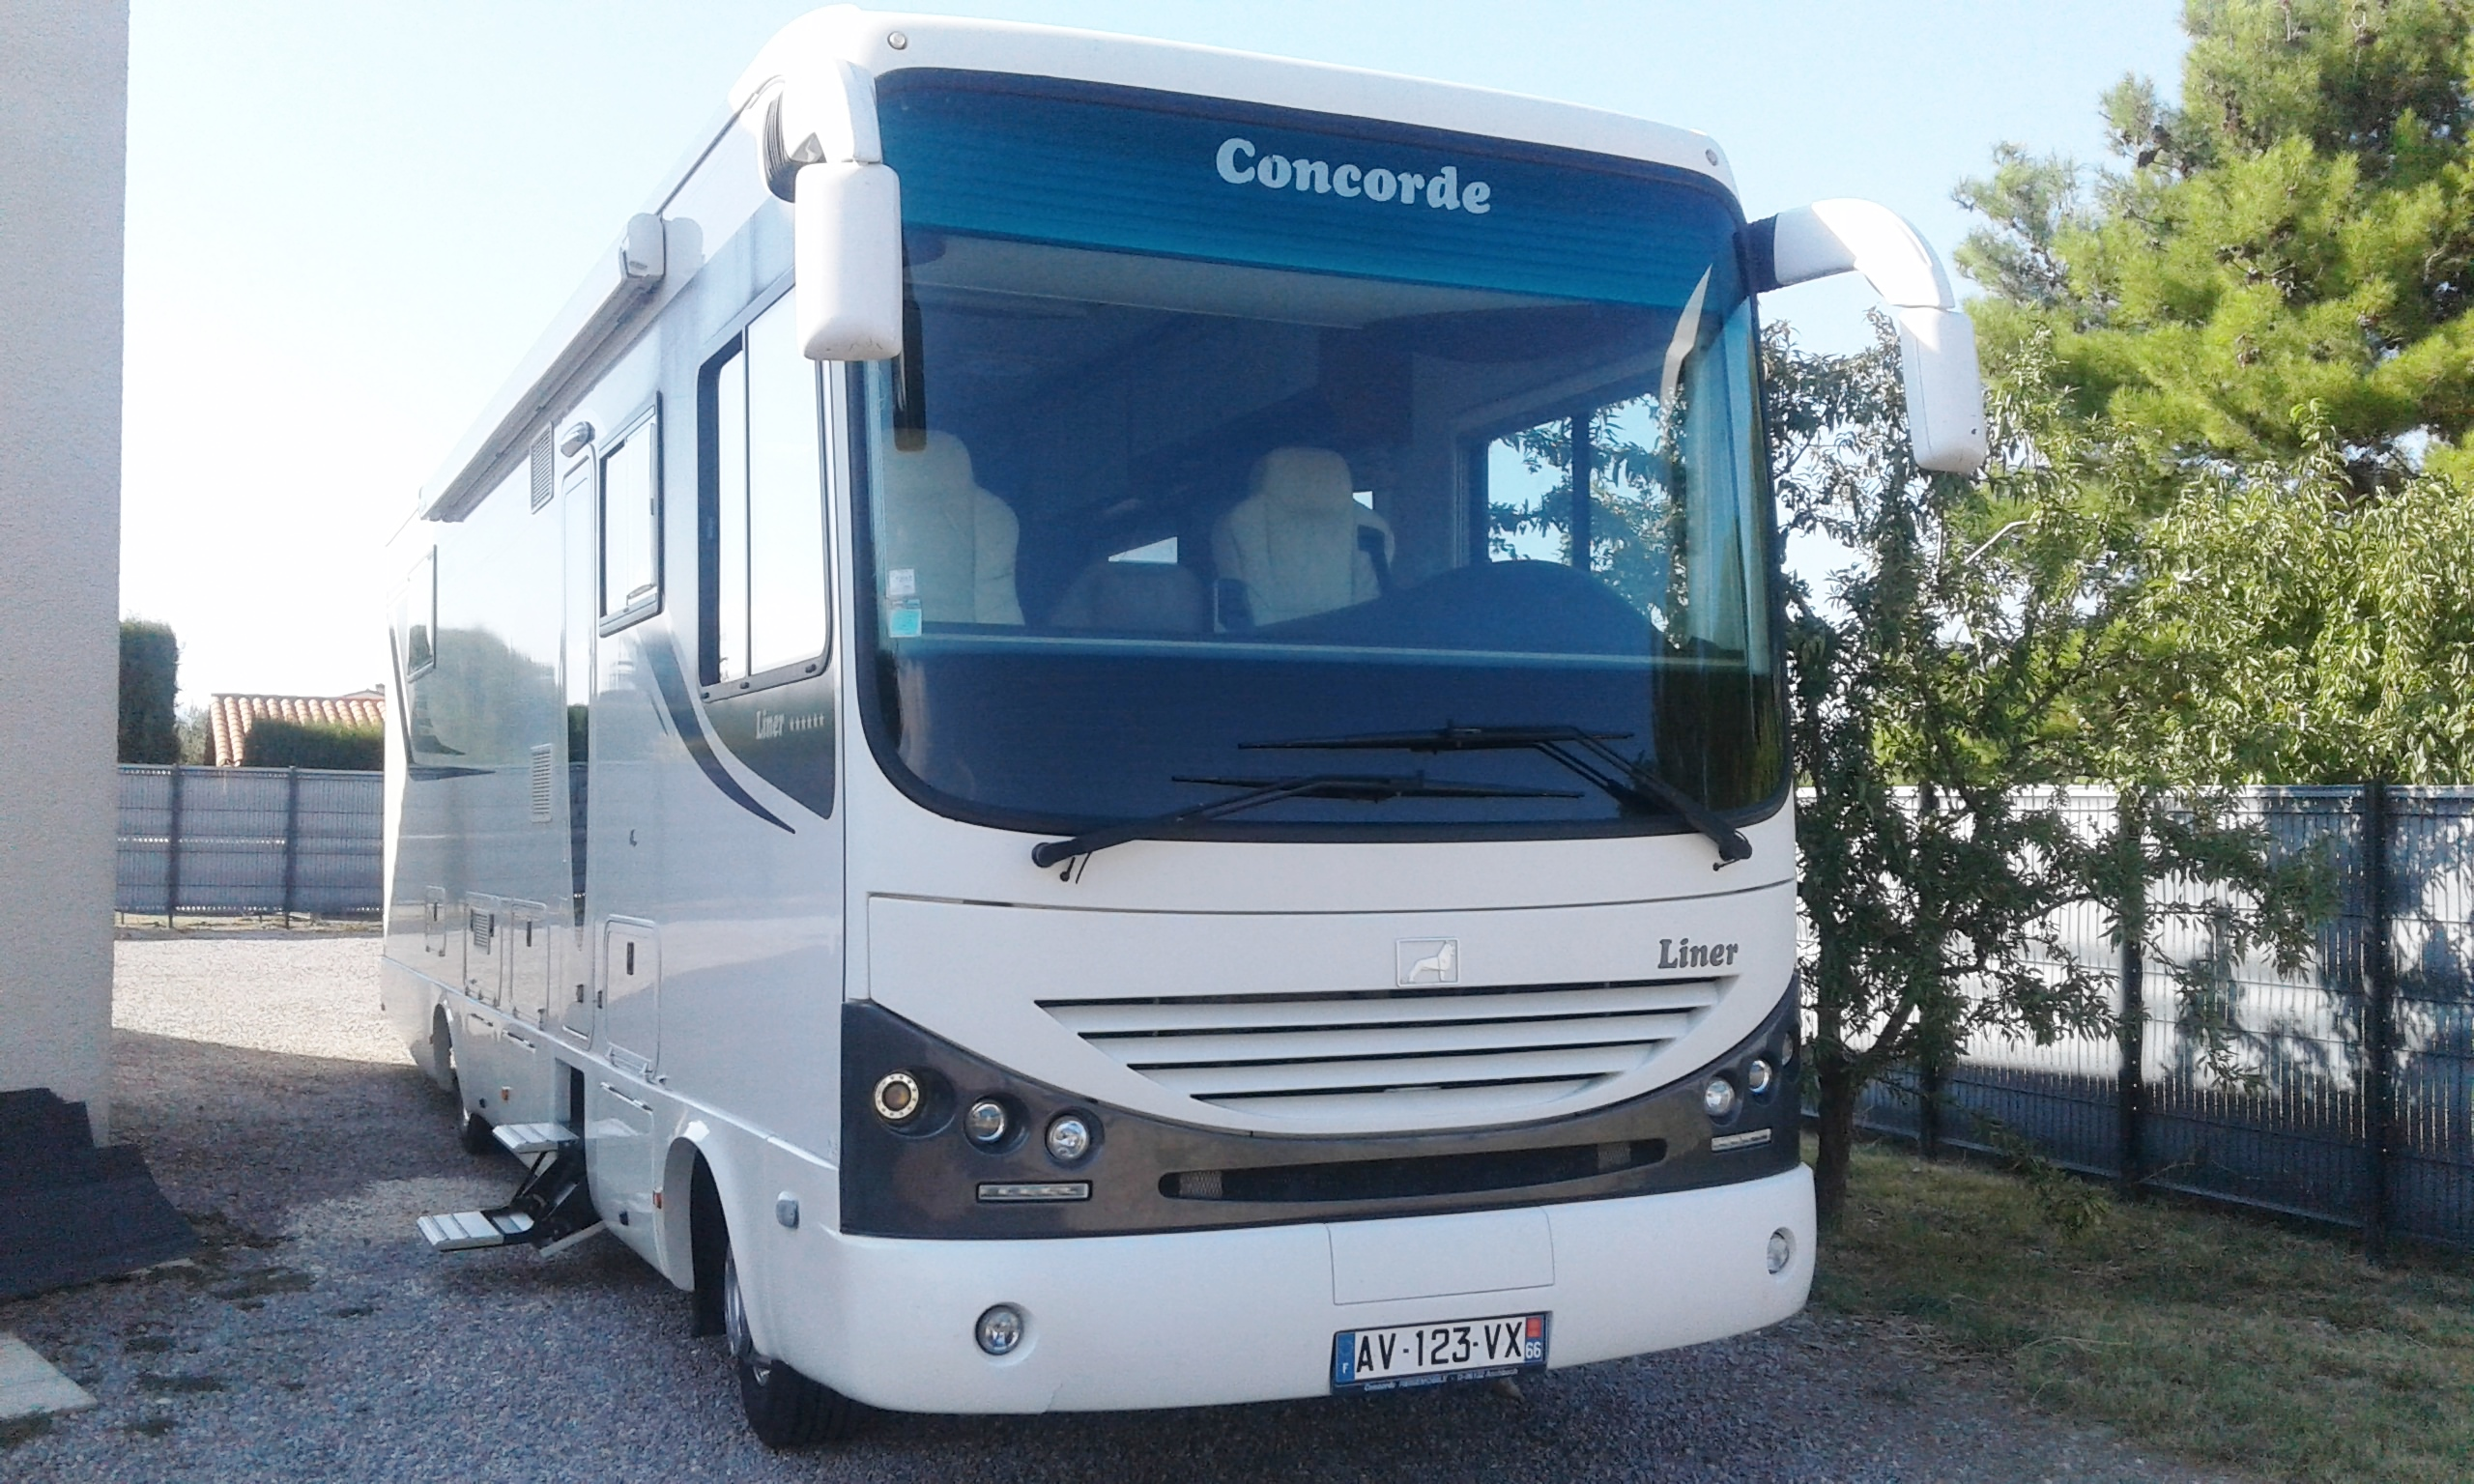 Concorde liner 1060 gmax occasion de 2010 man camping for Tarif location garage pour camping car